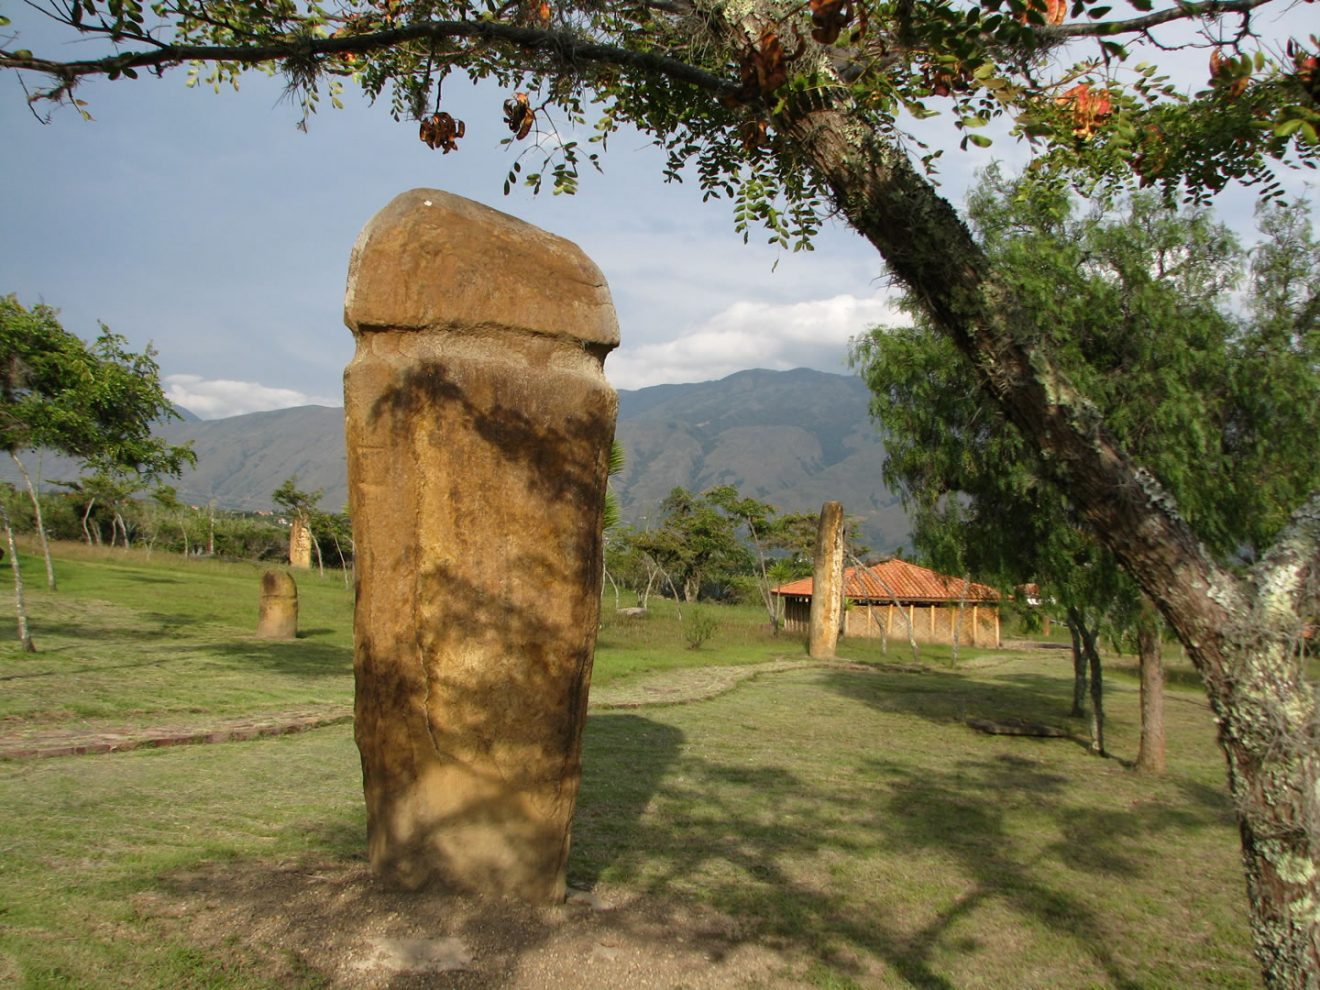 Archeological-Park-Infiernito-in-Villa-de-Leyva-3